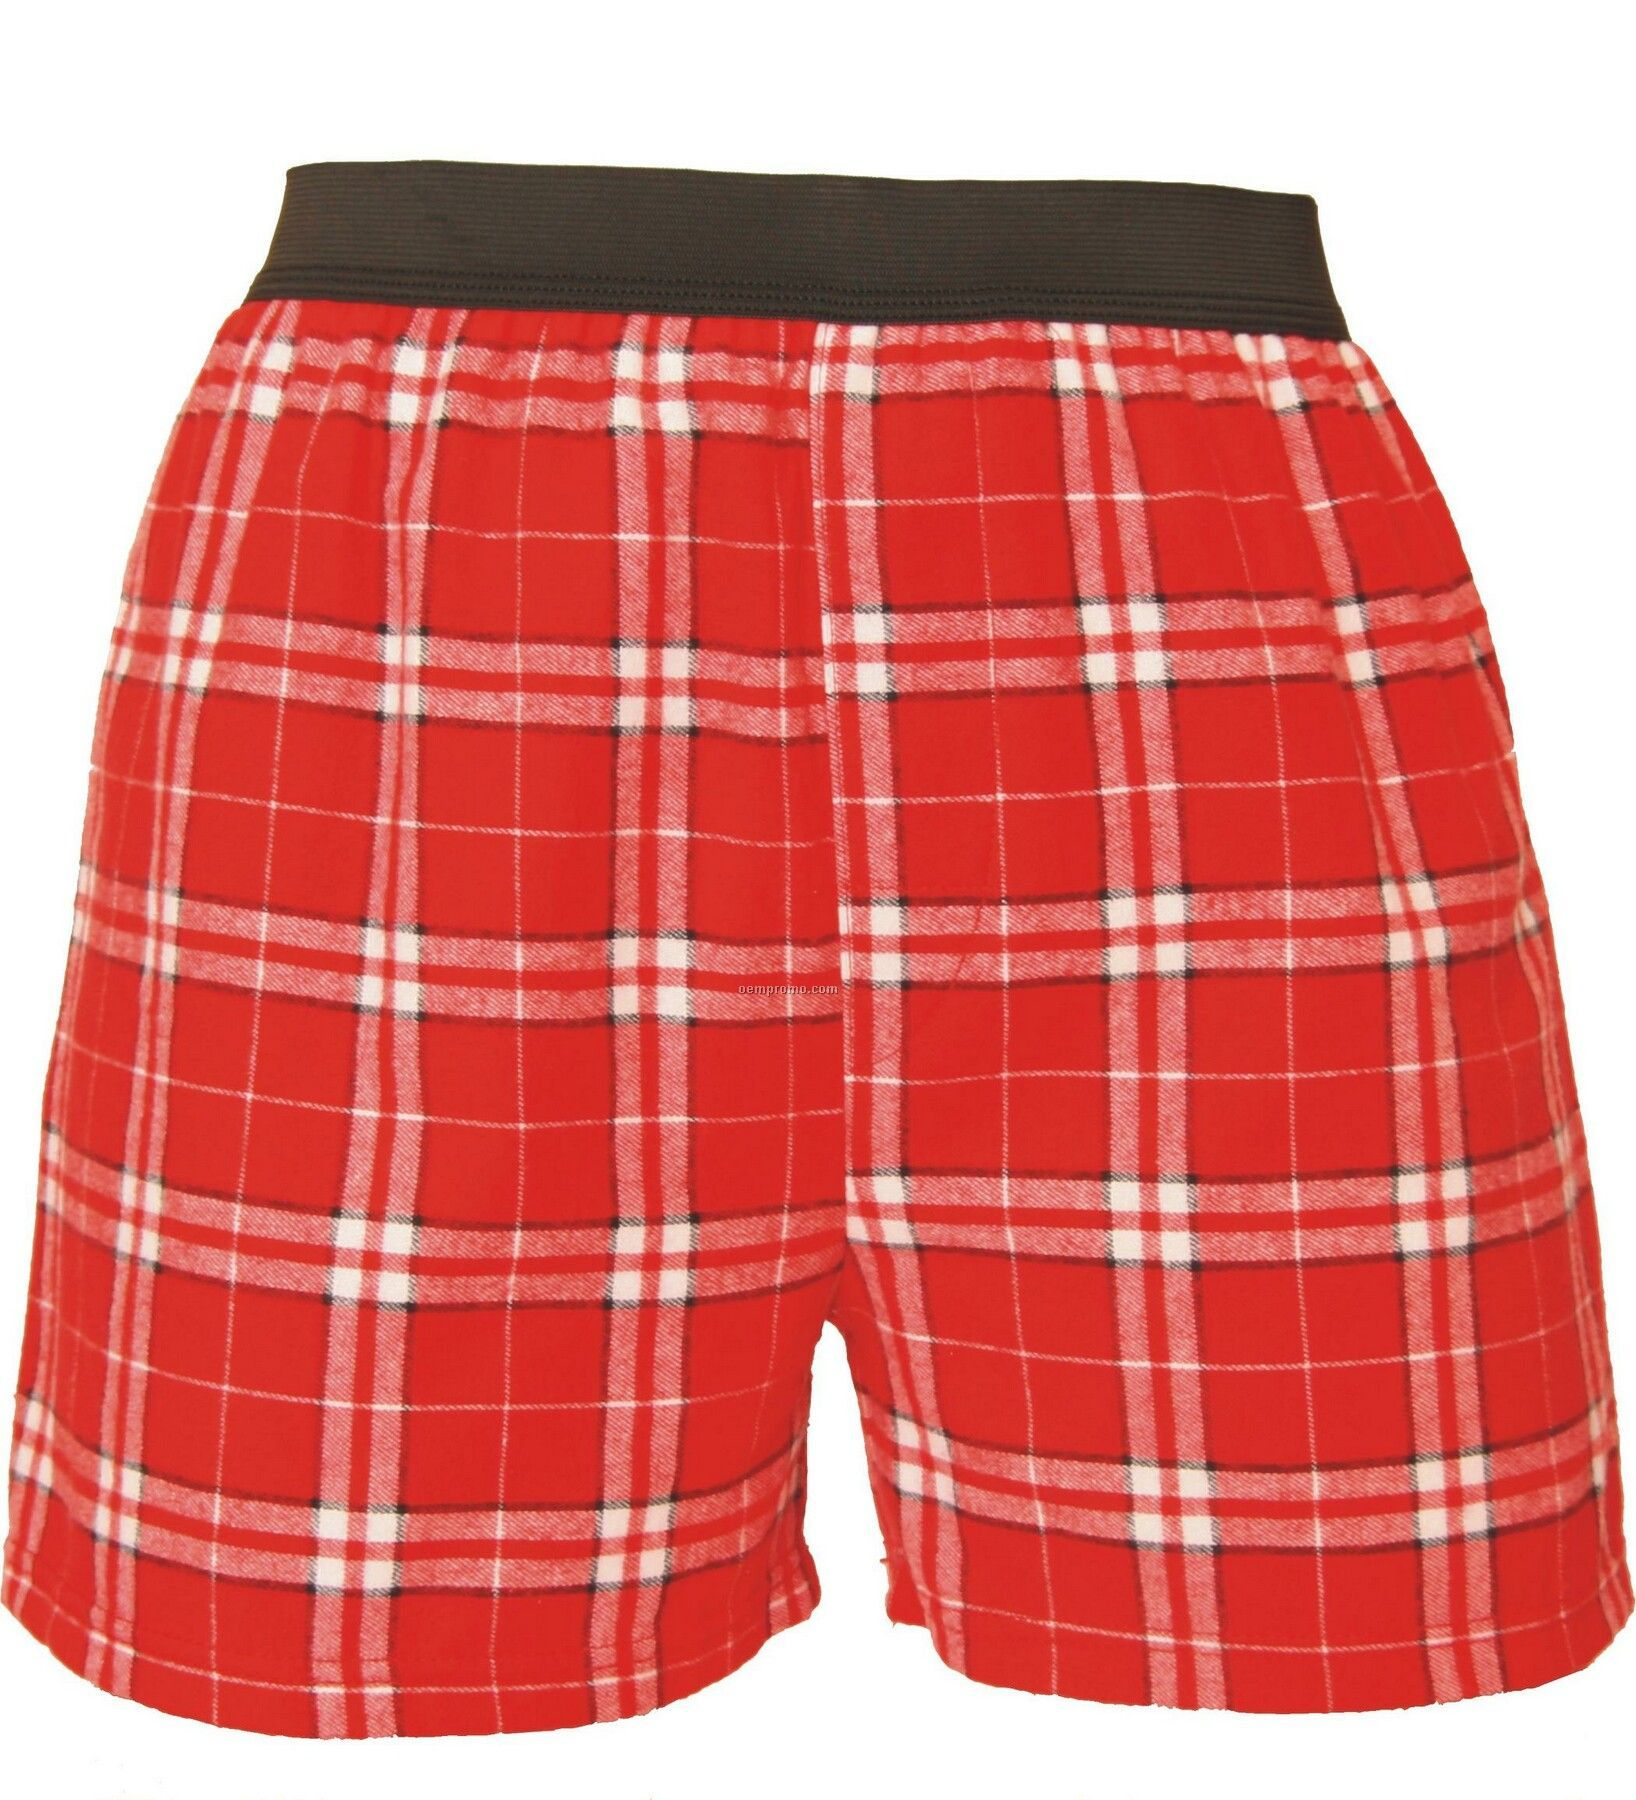 Adult Red Plaid Classic Boxer Short